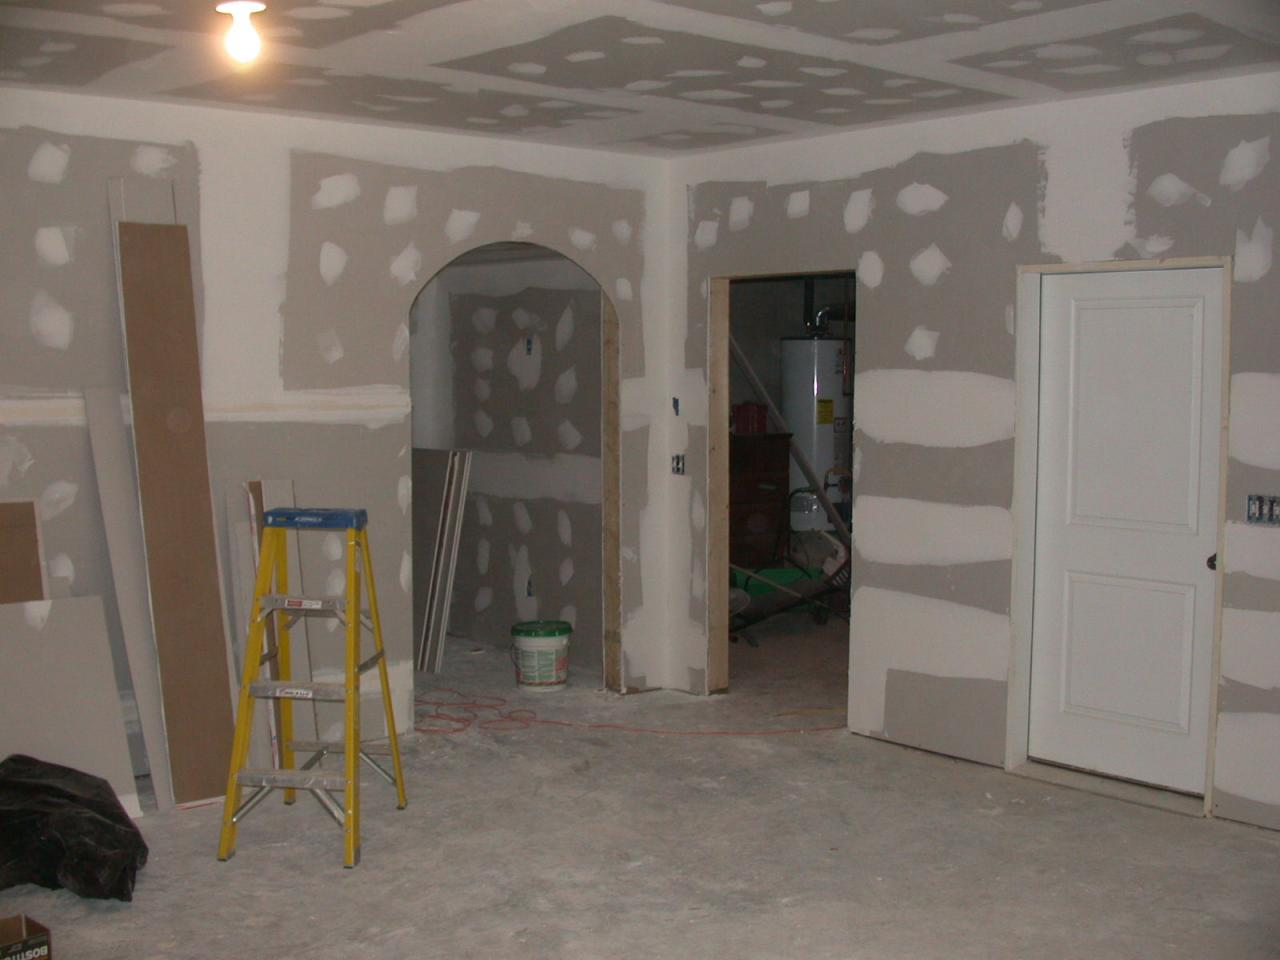 drywall is being prepared for paint